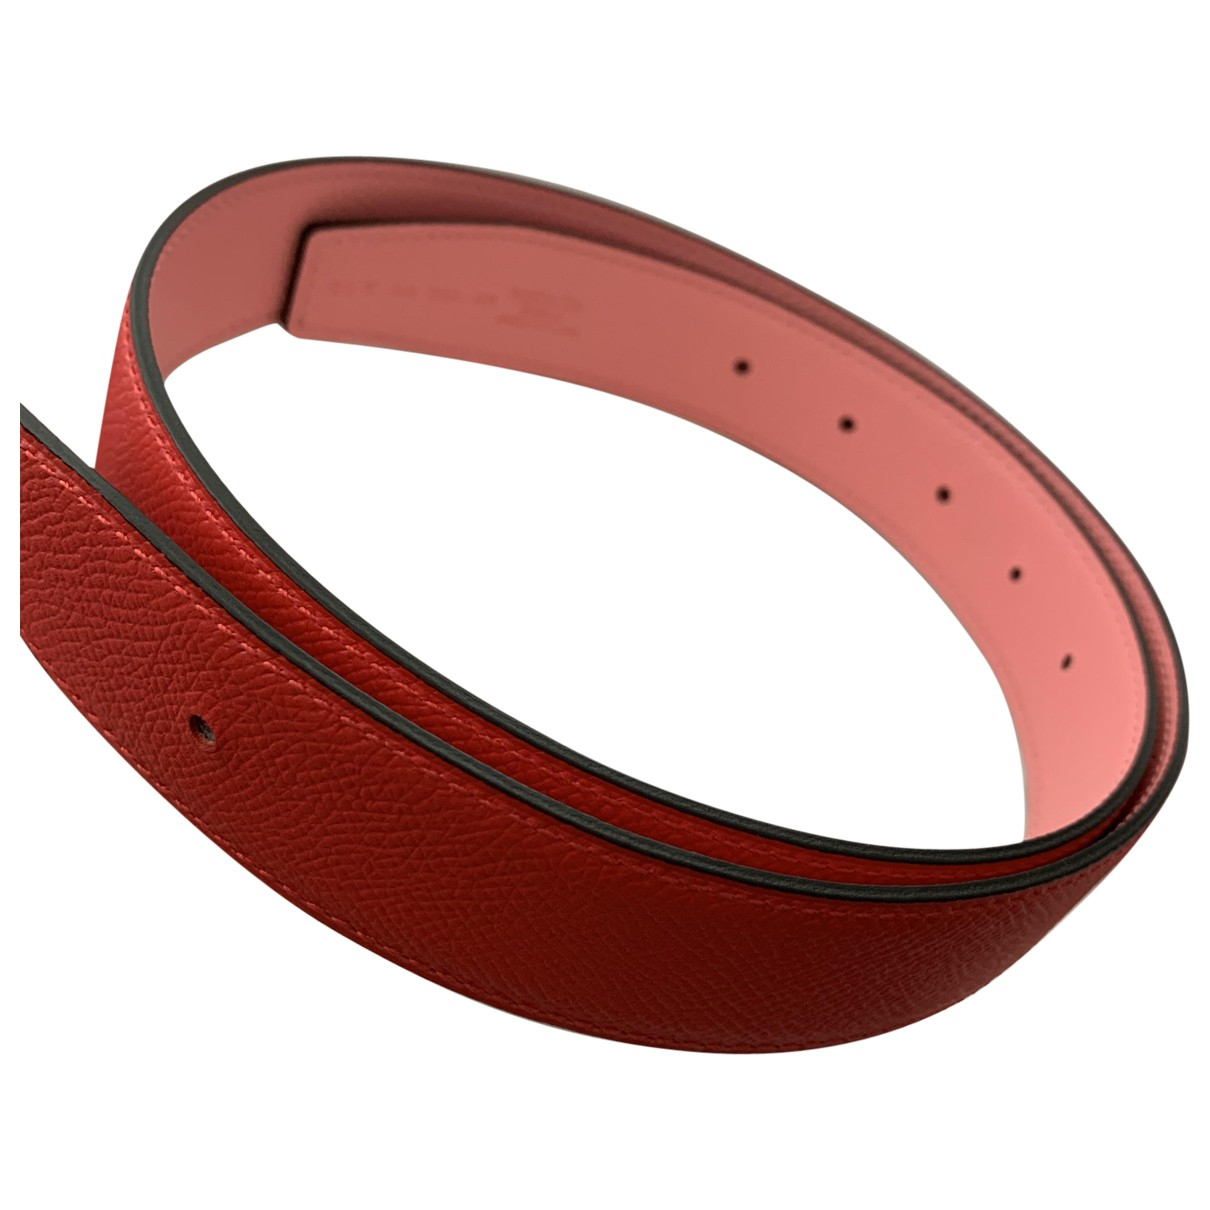 Hermès Cuir seul / Leather Strap Red Leather belt for Women 75 cm